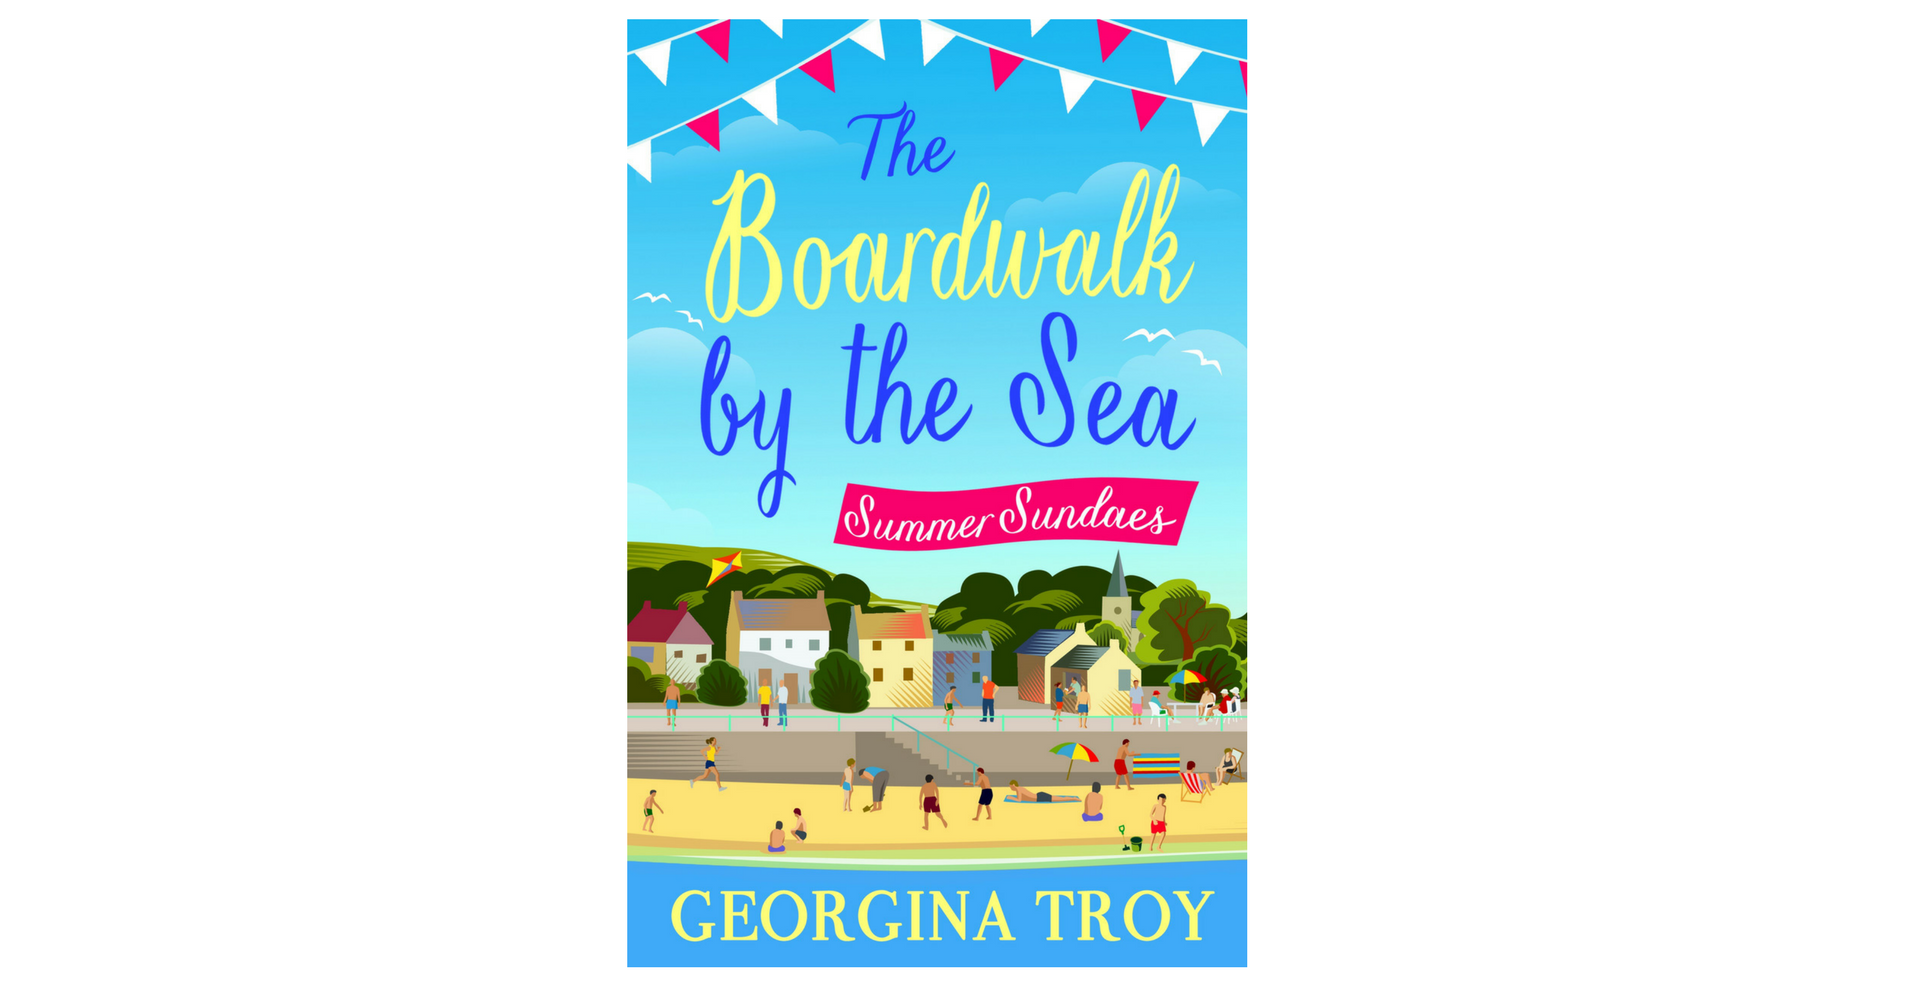 The Boardwalk by the Sea, Summer Sundaes, Georgina Troy